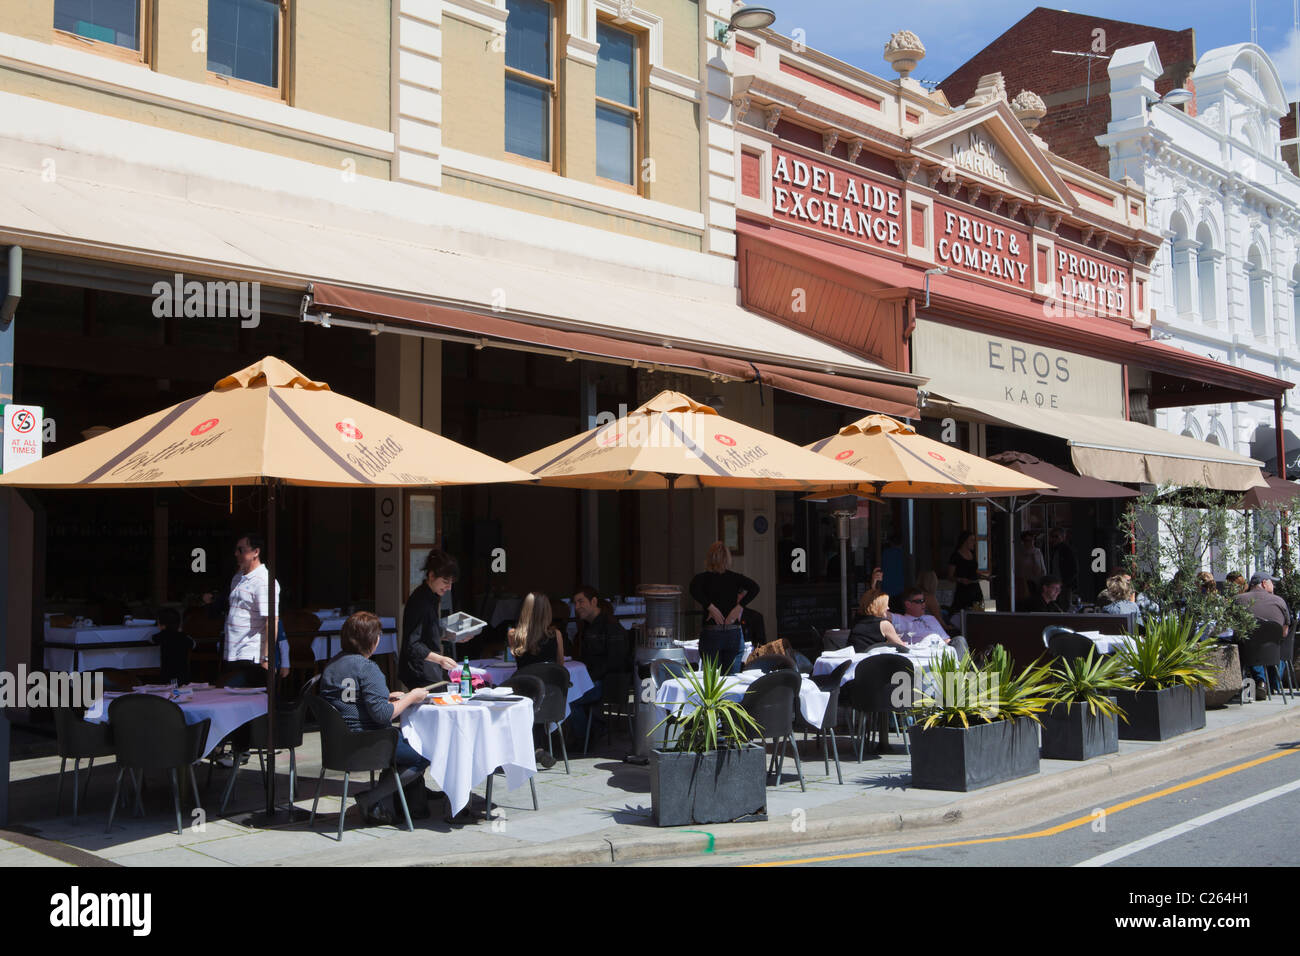 Outdoorküche Klein Cafe : Outdoor küche rundle mall rundle street adelaide südaustralien